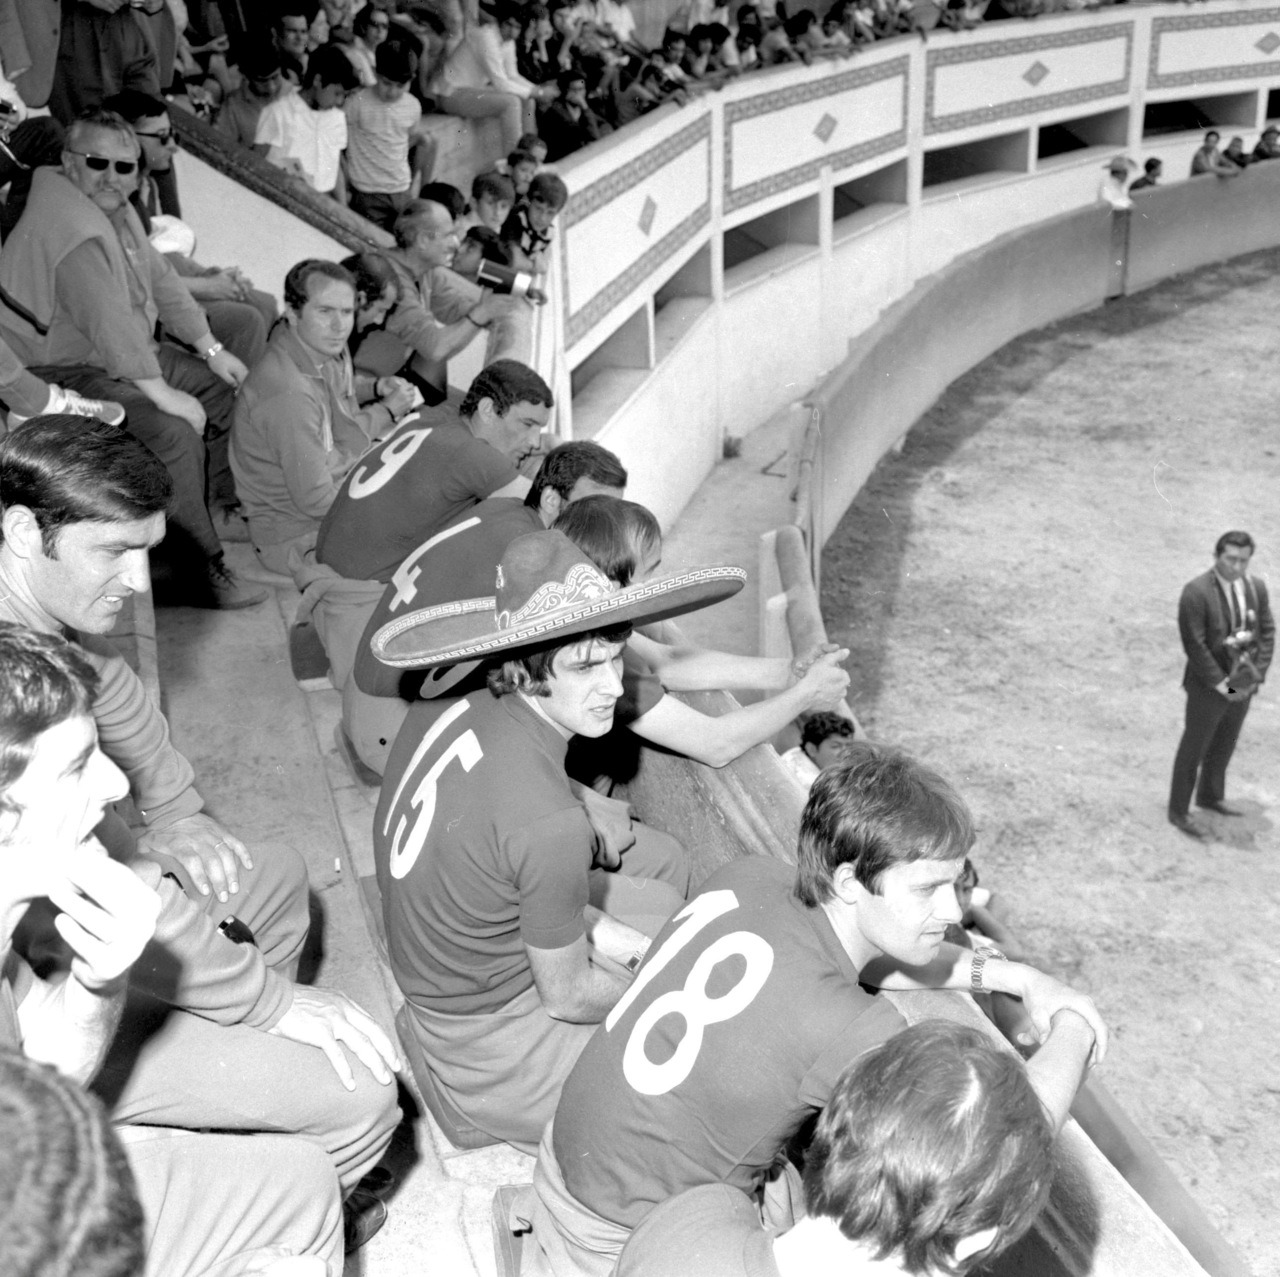 Gli Azzurri at a bullfight in Mexico, 1970.